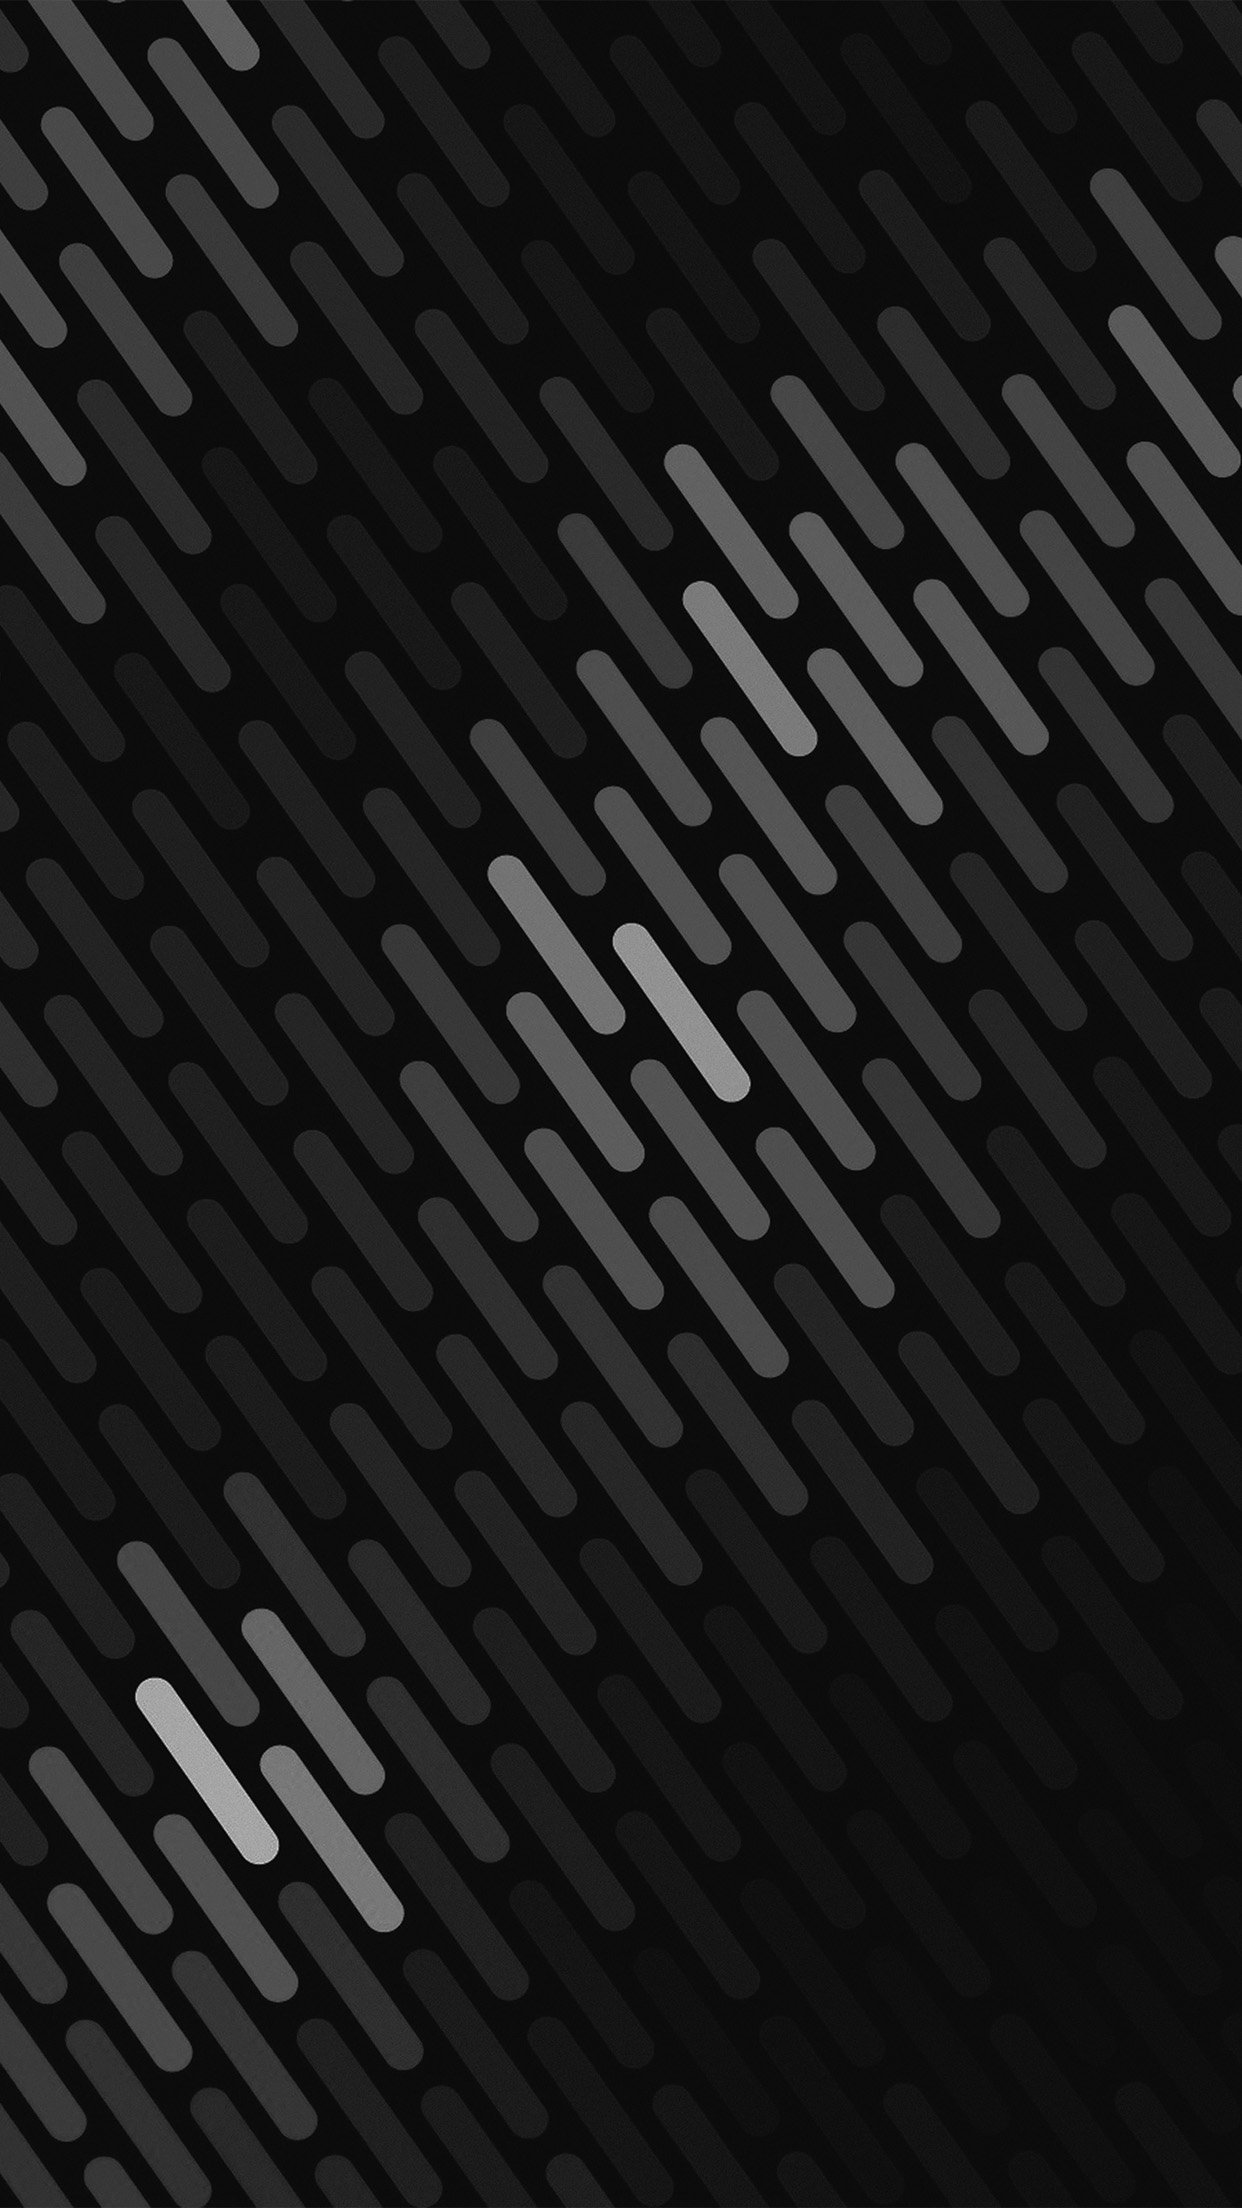 Black And White Iphone X Wallpaper